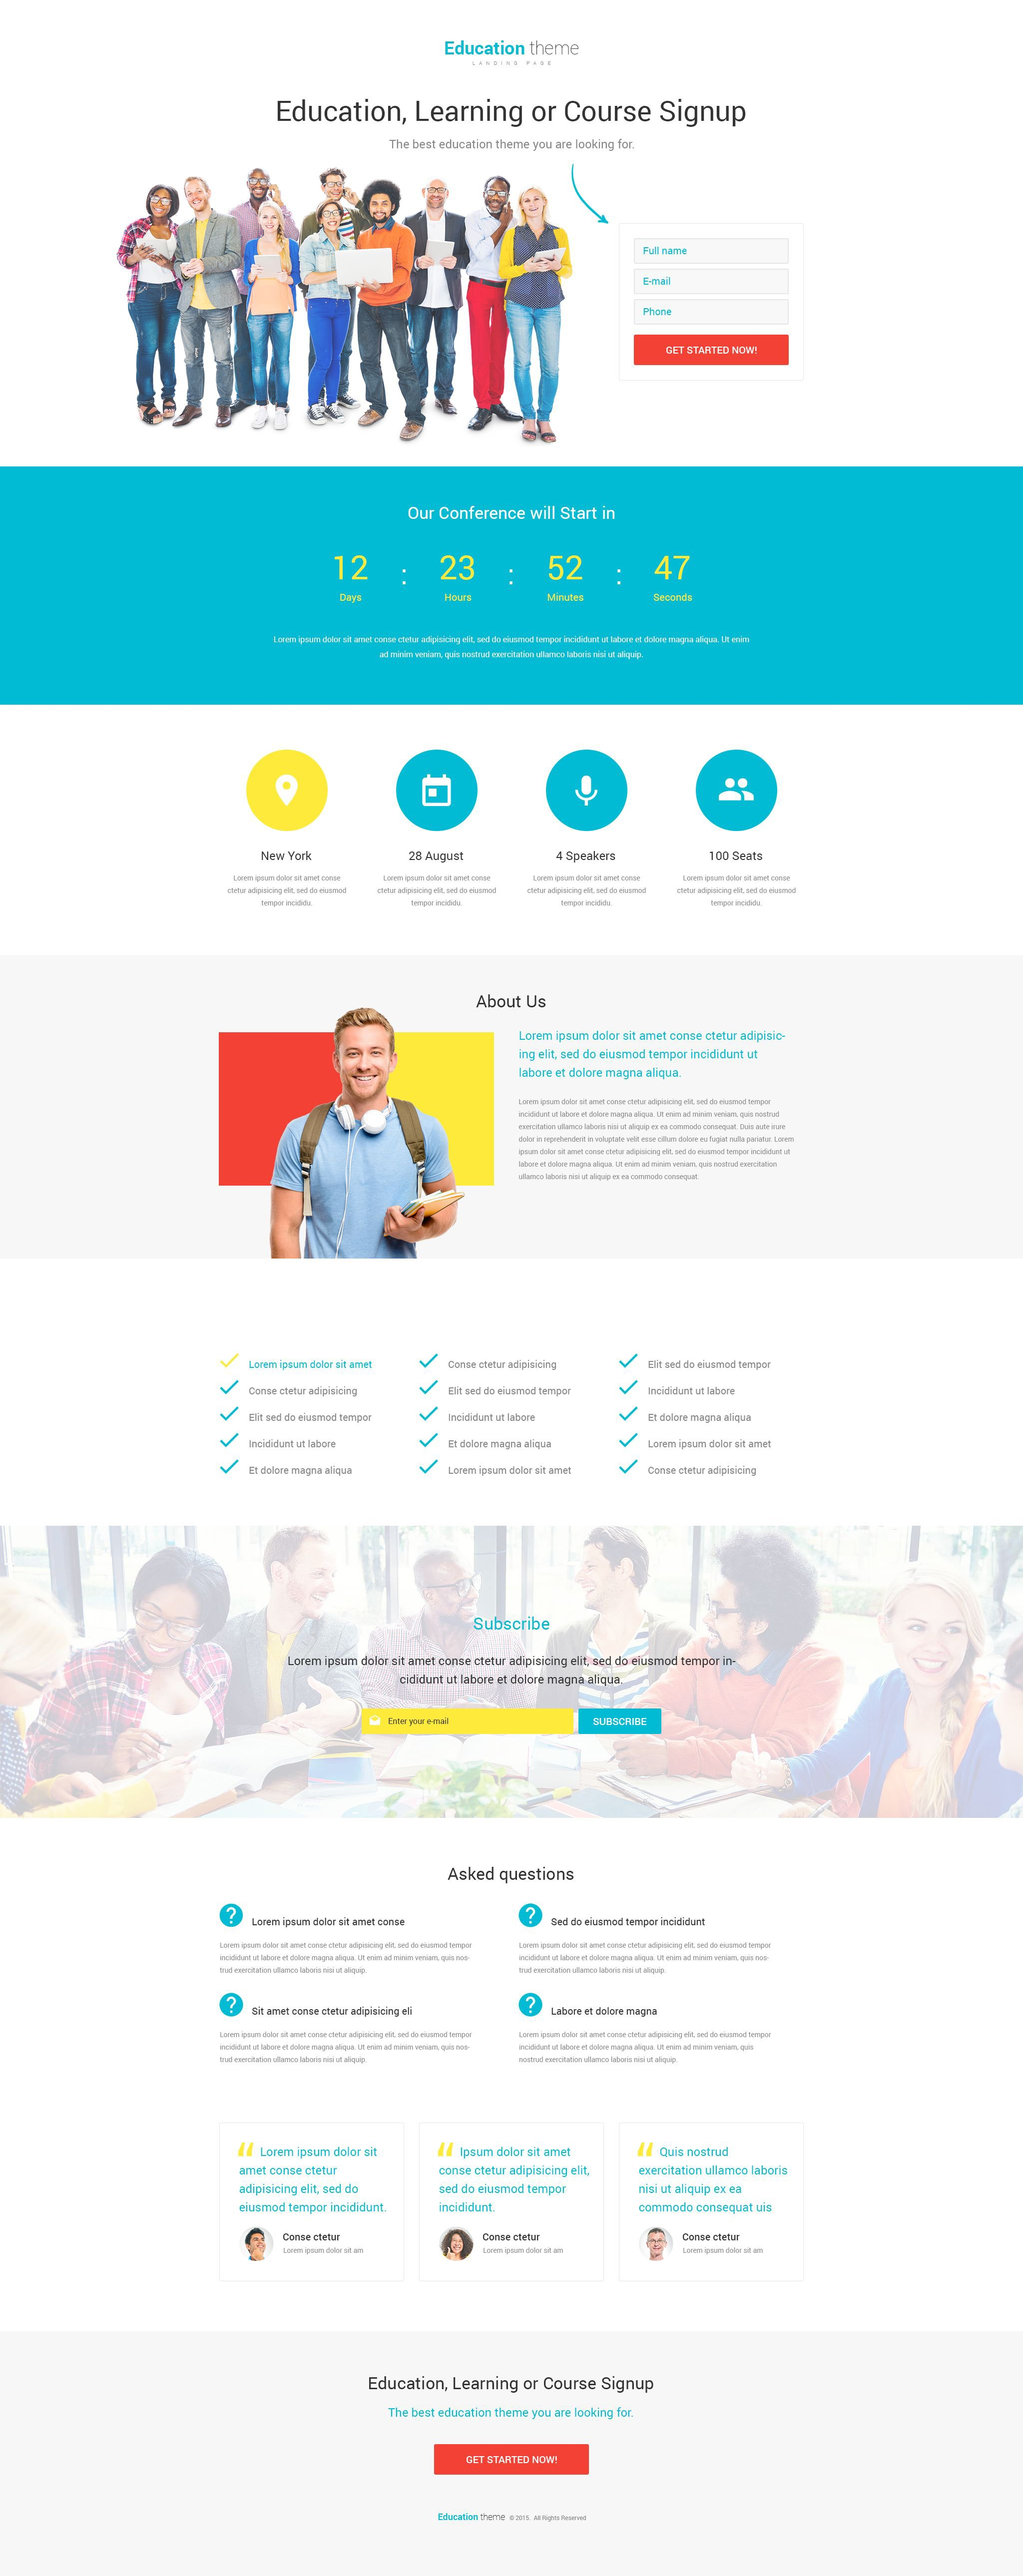 The Education Center Landing Page Template Design 53645, one of the best Landing Page templates of its kind (education, most popular), also known as education center Landing Page template, college Landing Page template, science Landing Page template, admission Landing Page template, faculty Landing Page template, department Landing Page template, class Landing Page template, alumni Landing Page template, student Landing Page template, professor Landing Page template, enrolment Landing Page template, union Landing Page template, library Landing Page template, auditorium Landing Page template, graduate Landing Page template, direction Landing Page template, tests Landing Page template, entrance Landing Page template, examination Landing Page template, exam Landing Page template, sport Landing Page template, community Landing Page template, party Landing Page template, administration Landing Page template, rector Landing Page template, head Landing Page template, dean Landing Page template, coll and related with education center, college, science, admission, faculty, department, class, alumni, student, professor, enrolment, union, library, auditorium, graduate, direction, tests, entrance, examination, exam, sport, community, party, administration, rector, head, dean, coll, etc.